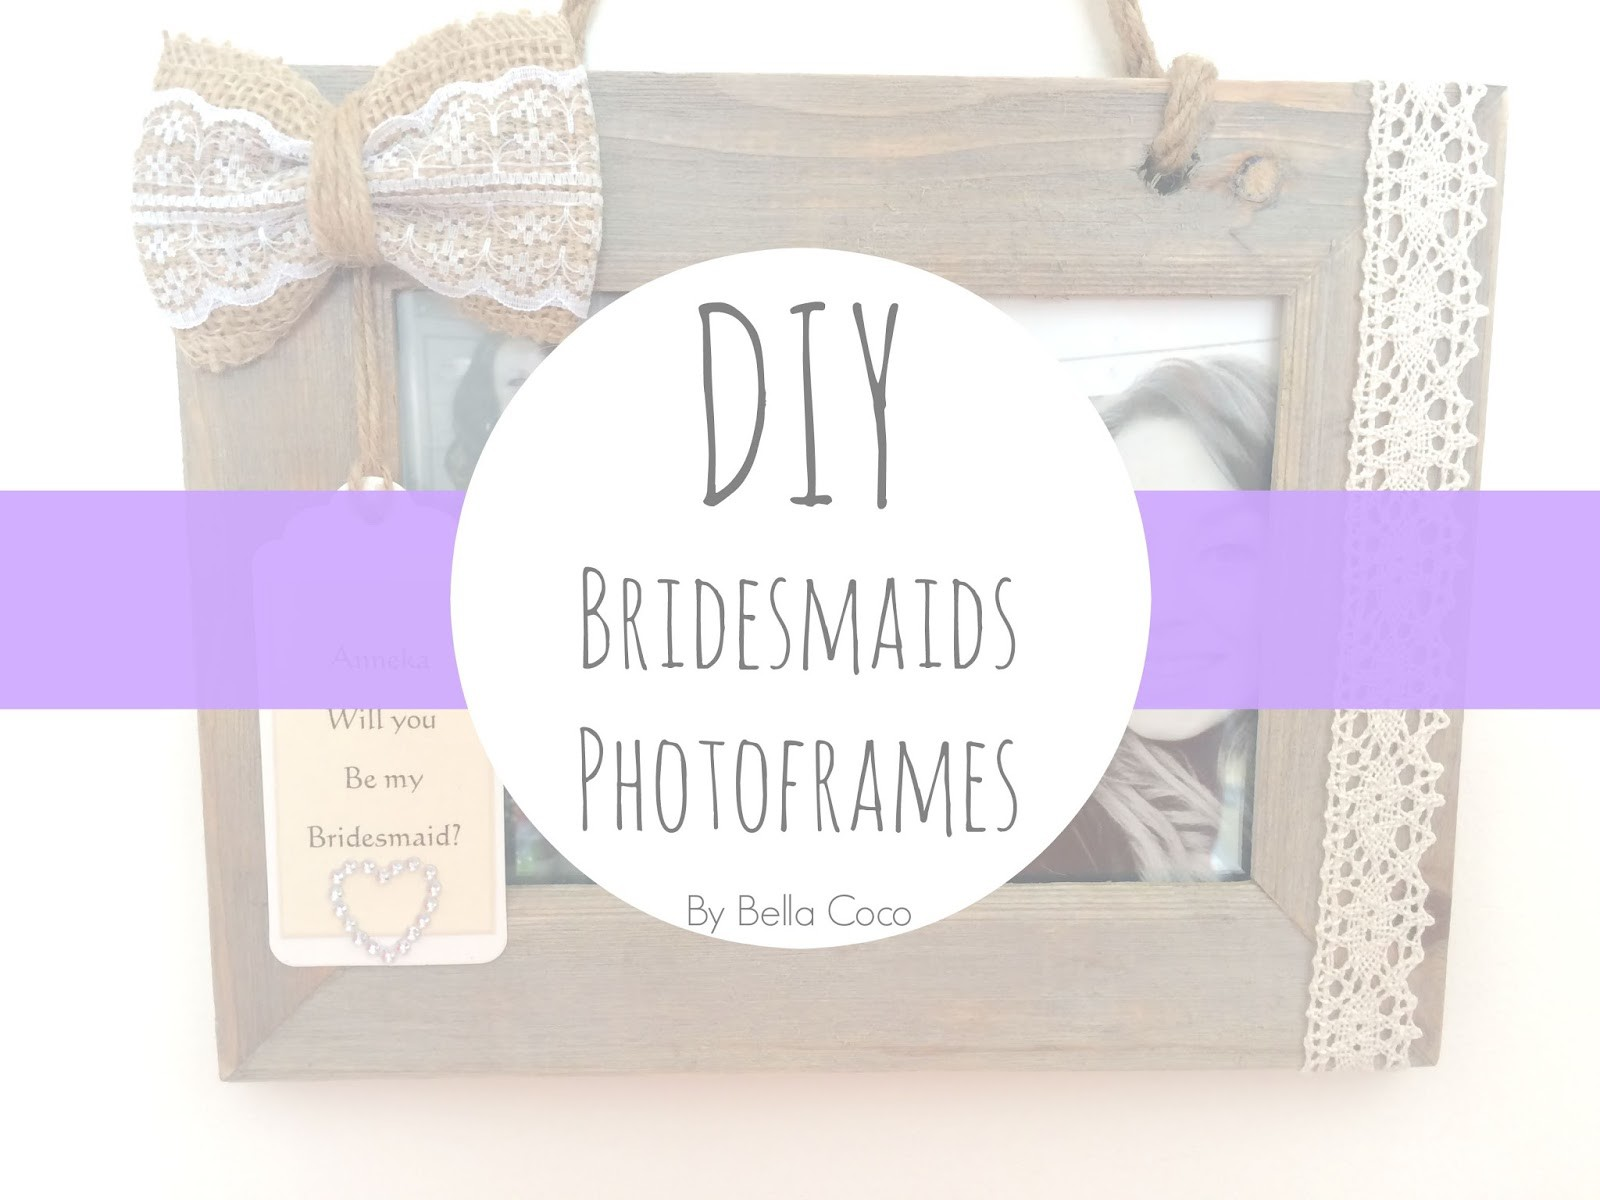 DIY \'Will you be my bridesmaid?\' photo frame - Bella Coco by Sarah-Jayne